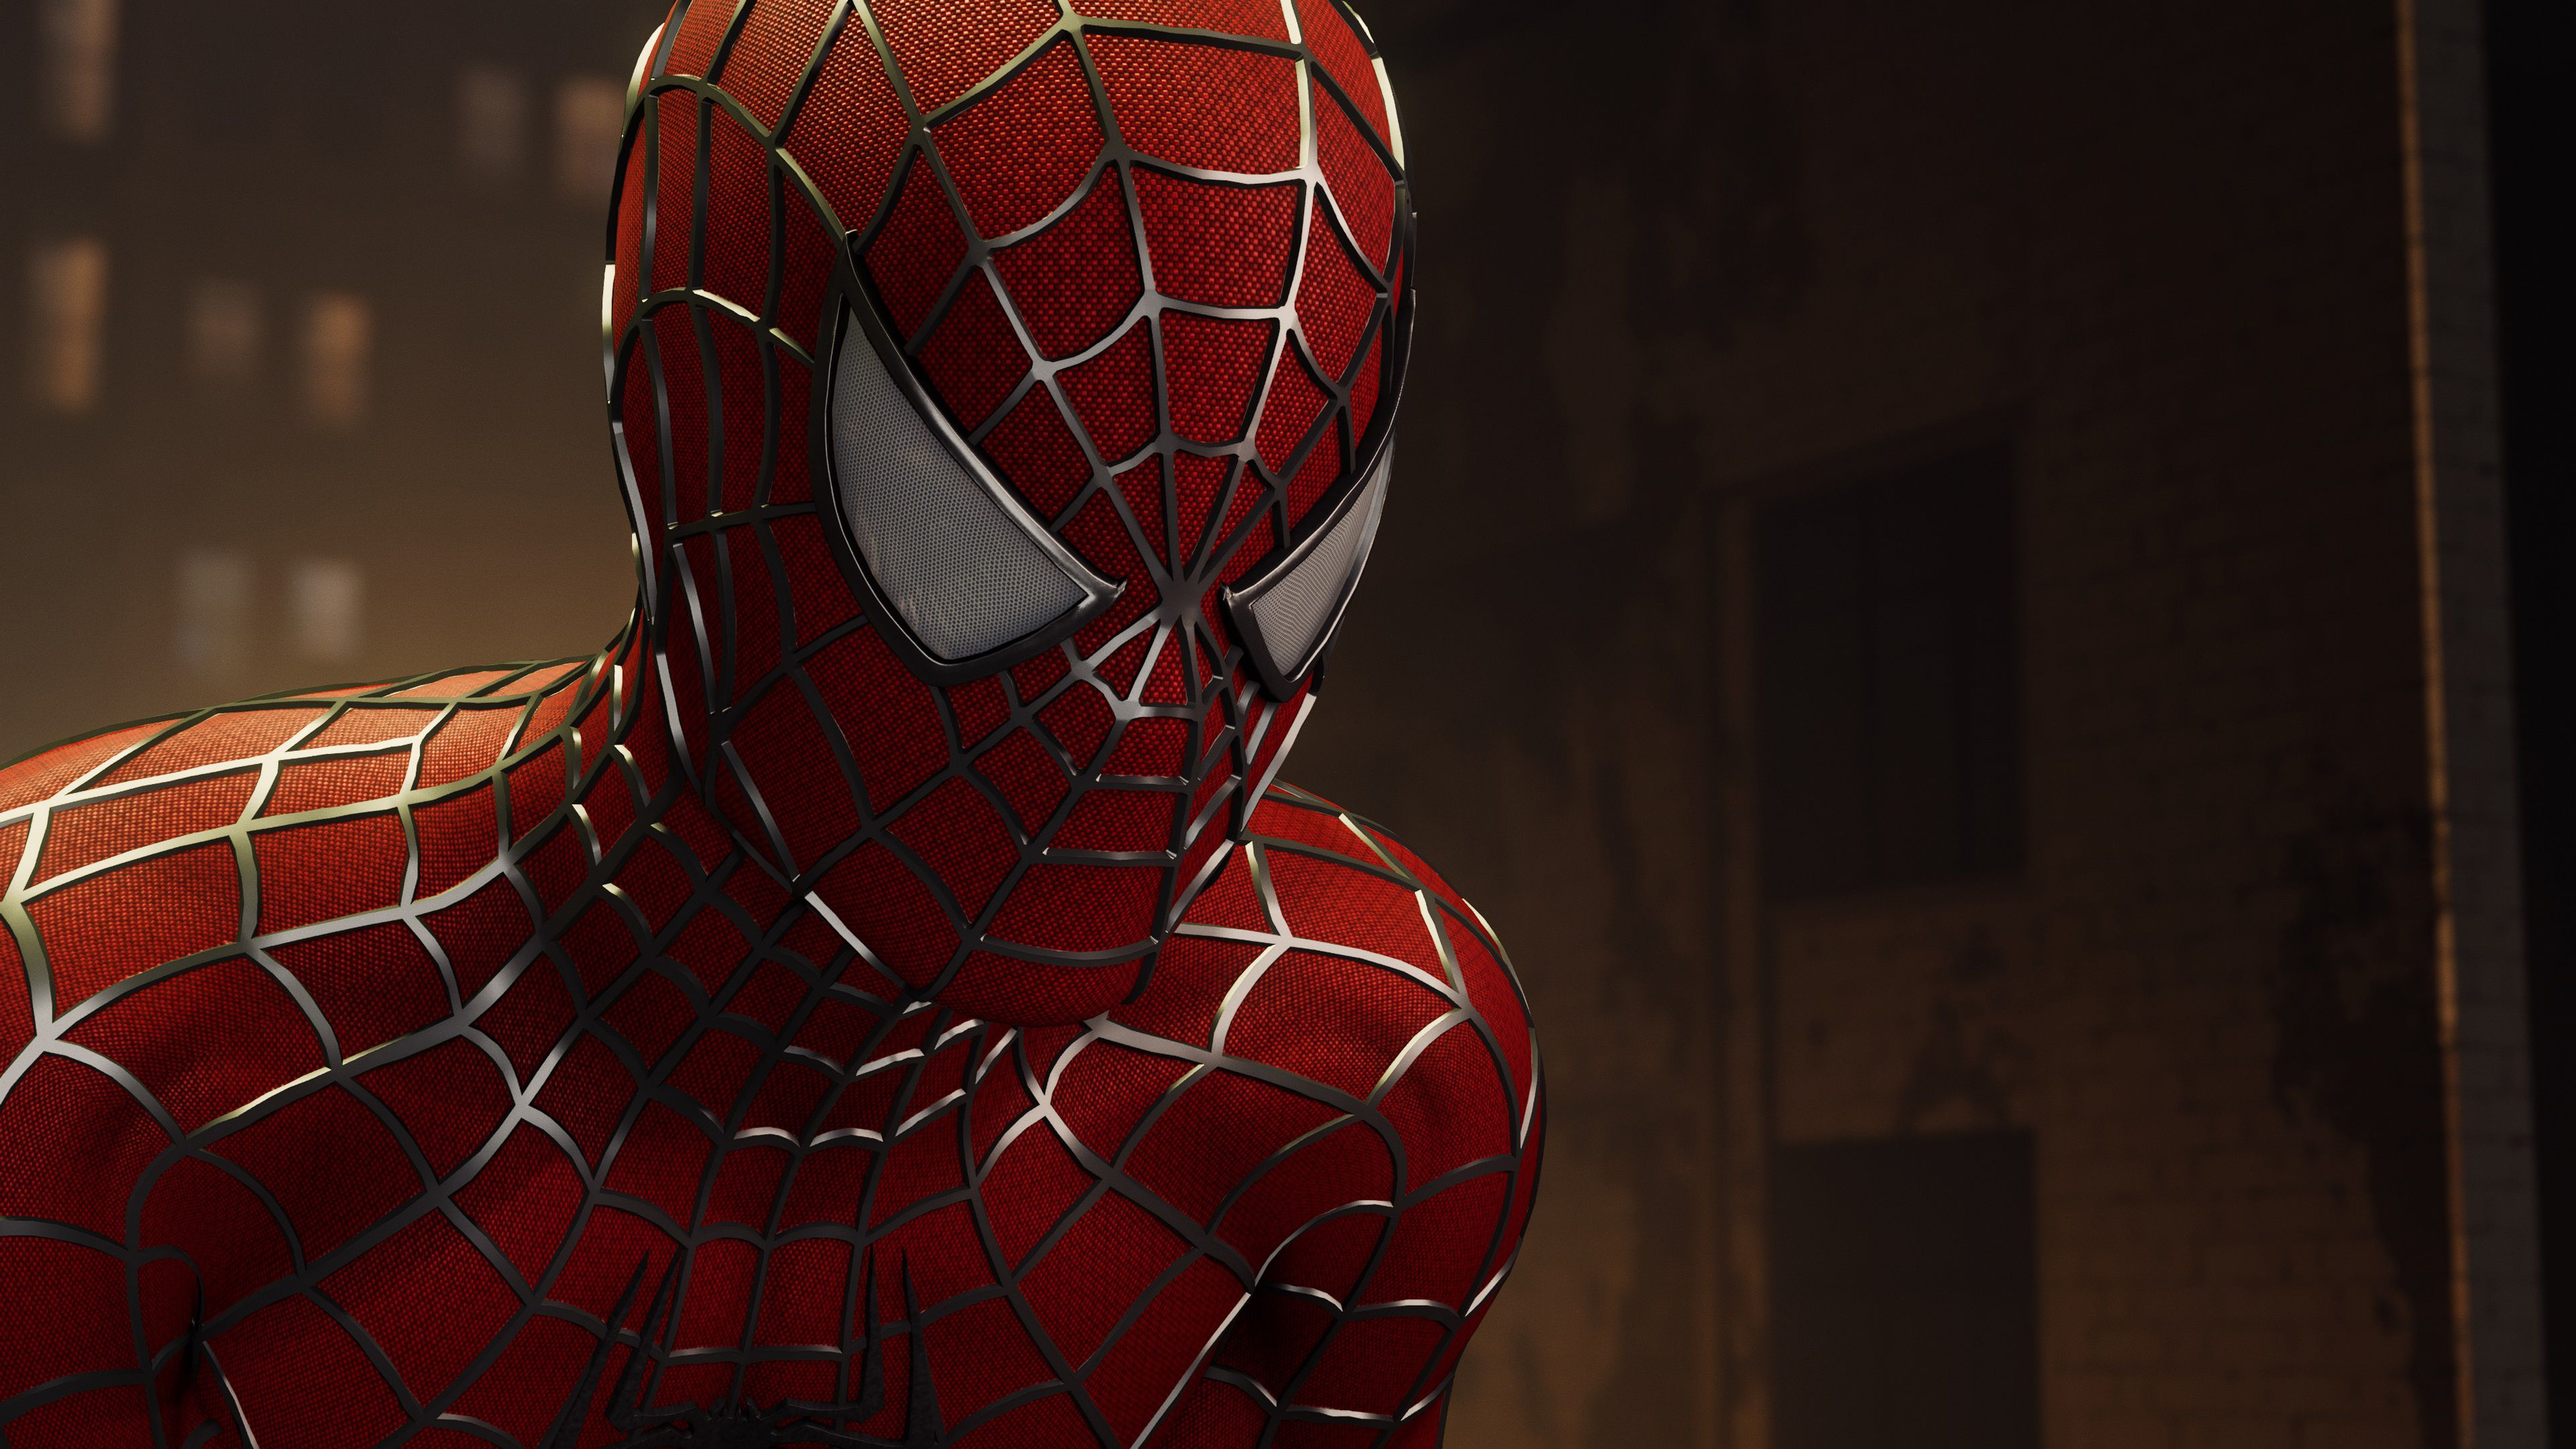 Spiderman 4k 2019 Superheroes Wallpapers Spiderman Wallpapers Spiderman Ps4 Wallpapers Ps Games Wallpapers Hd Wallpapers Games Wallpapers 4k Wallpapers 2